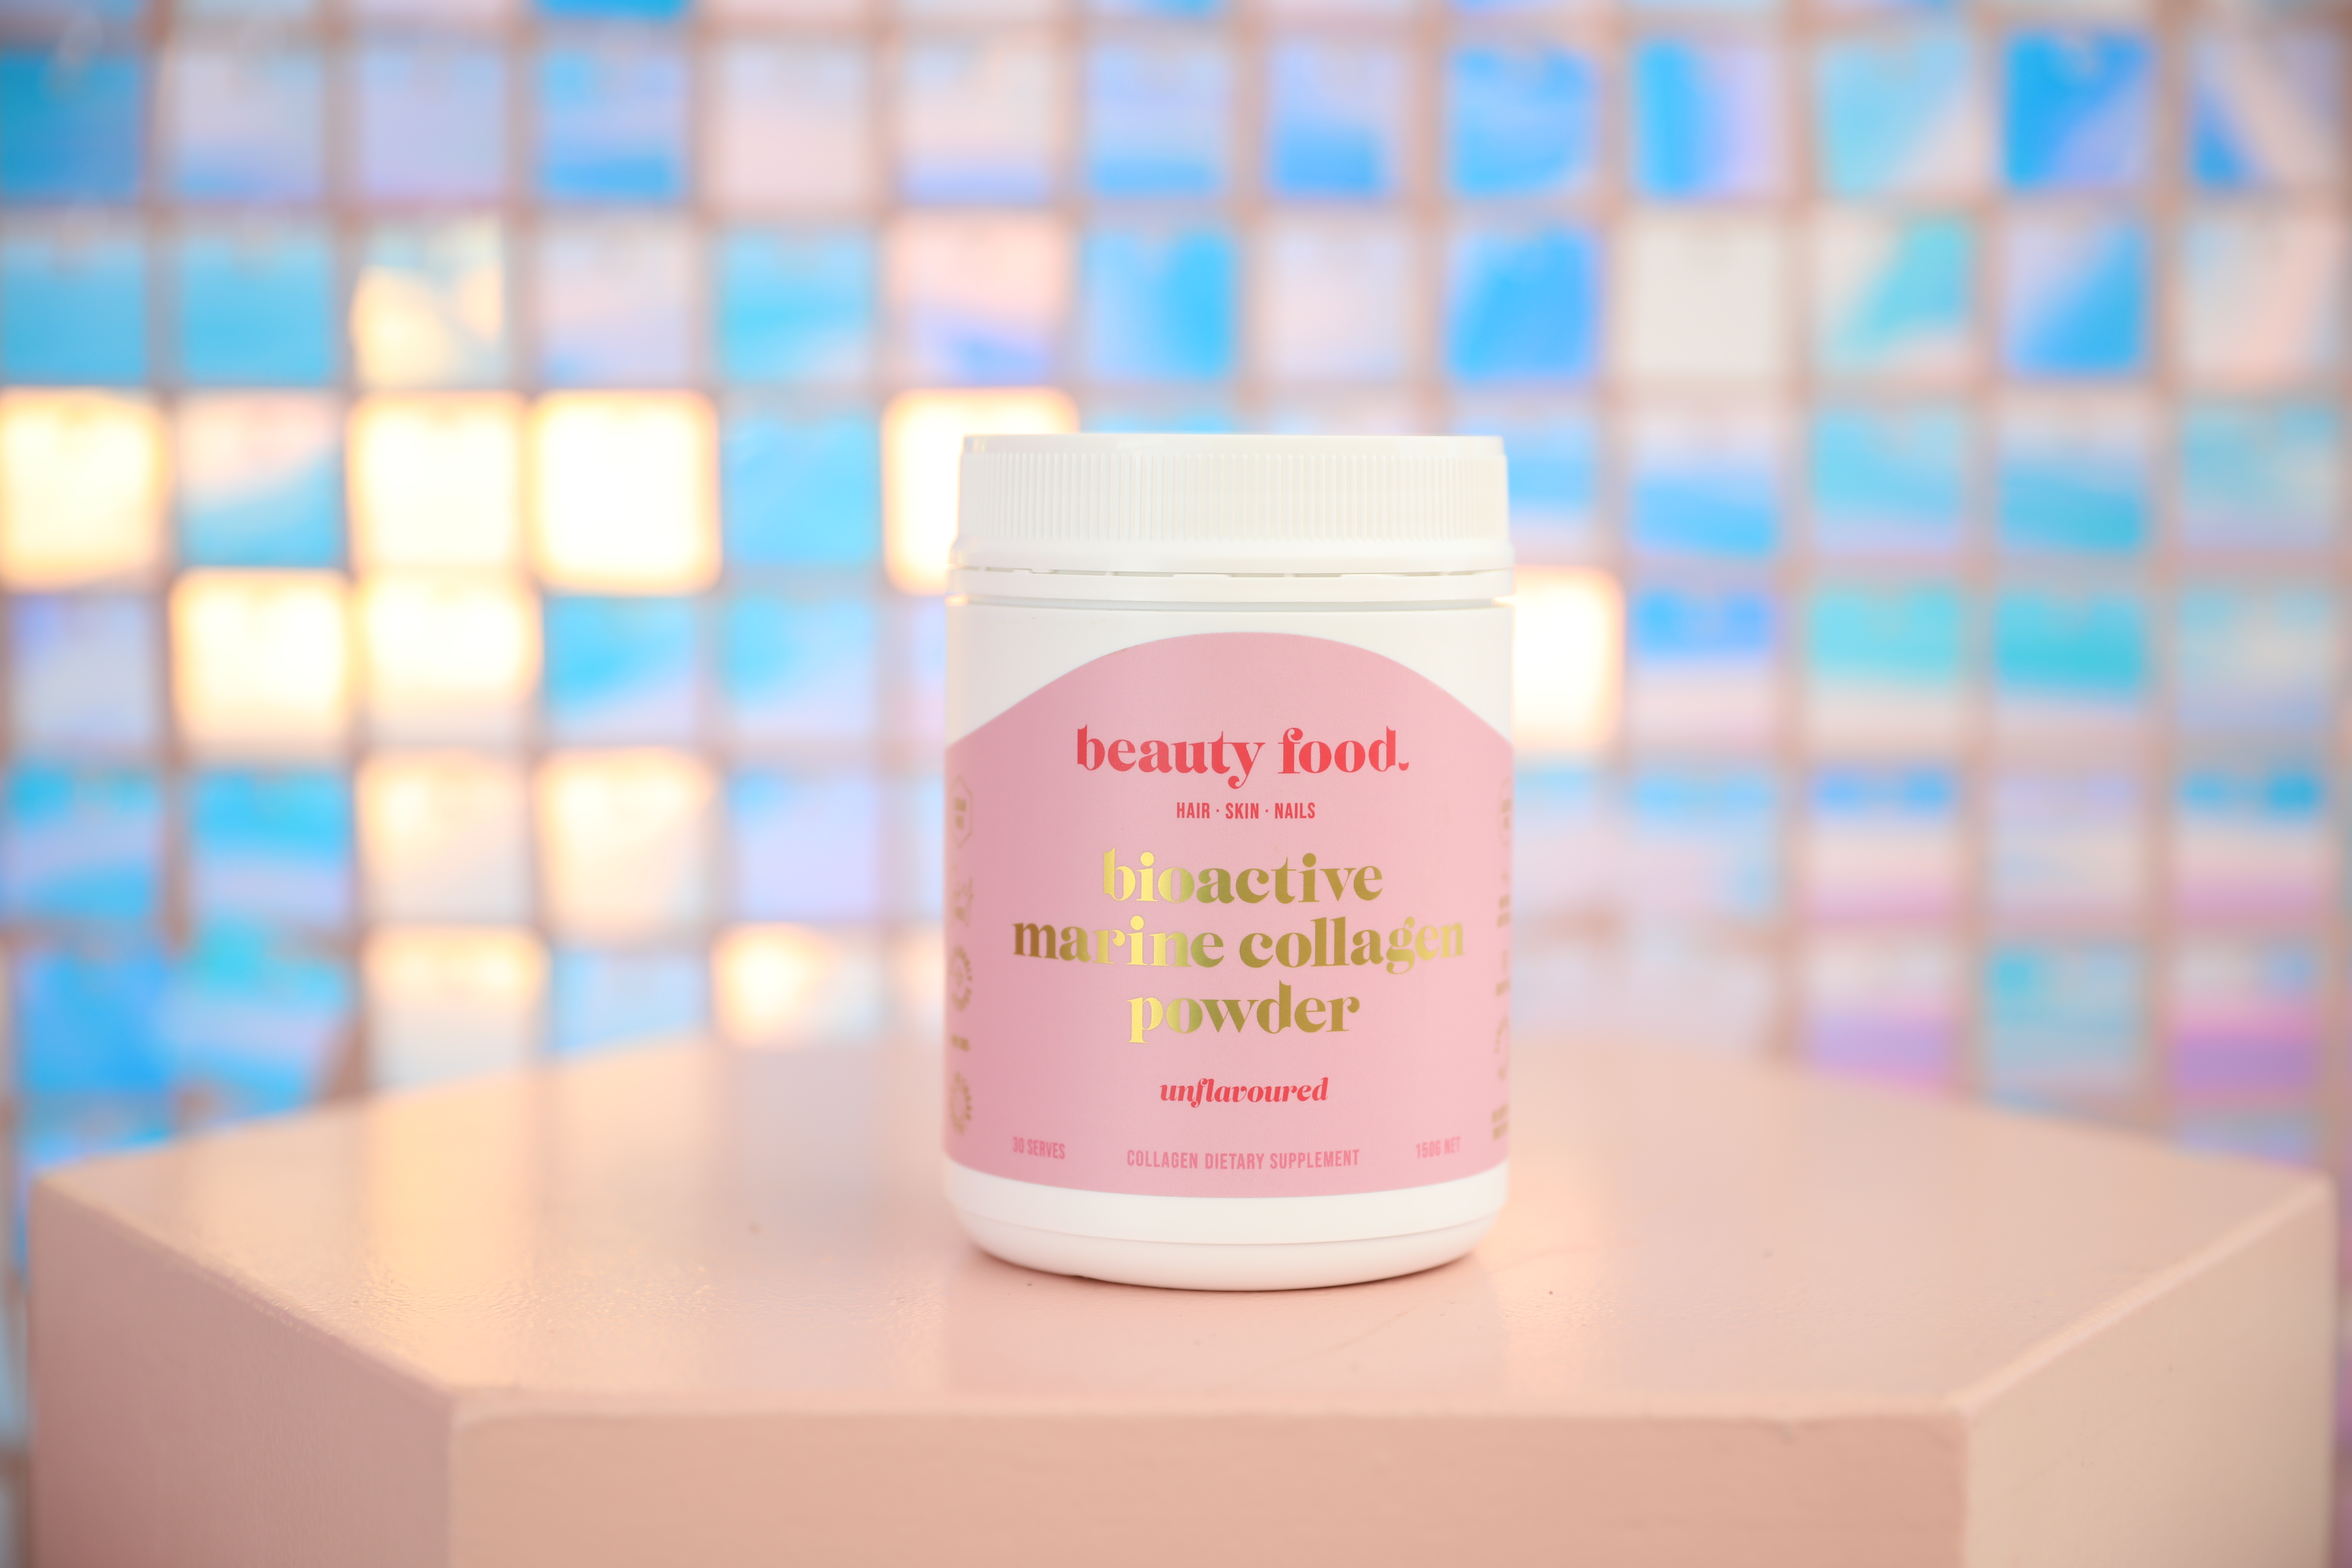 Beauty Food's range has expanded